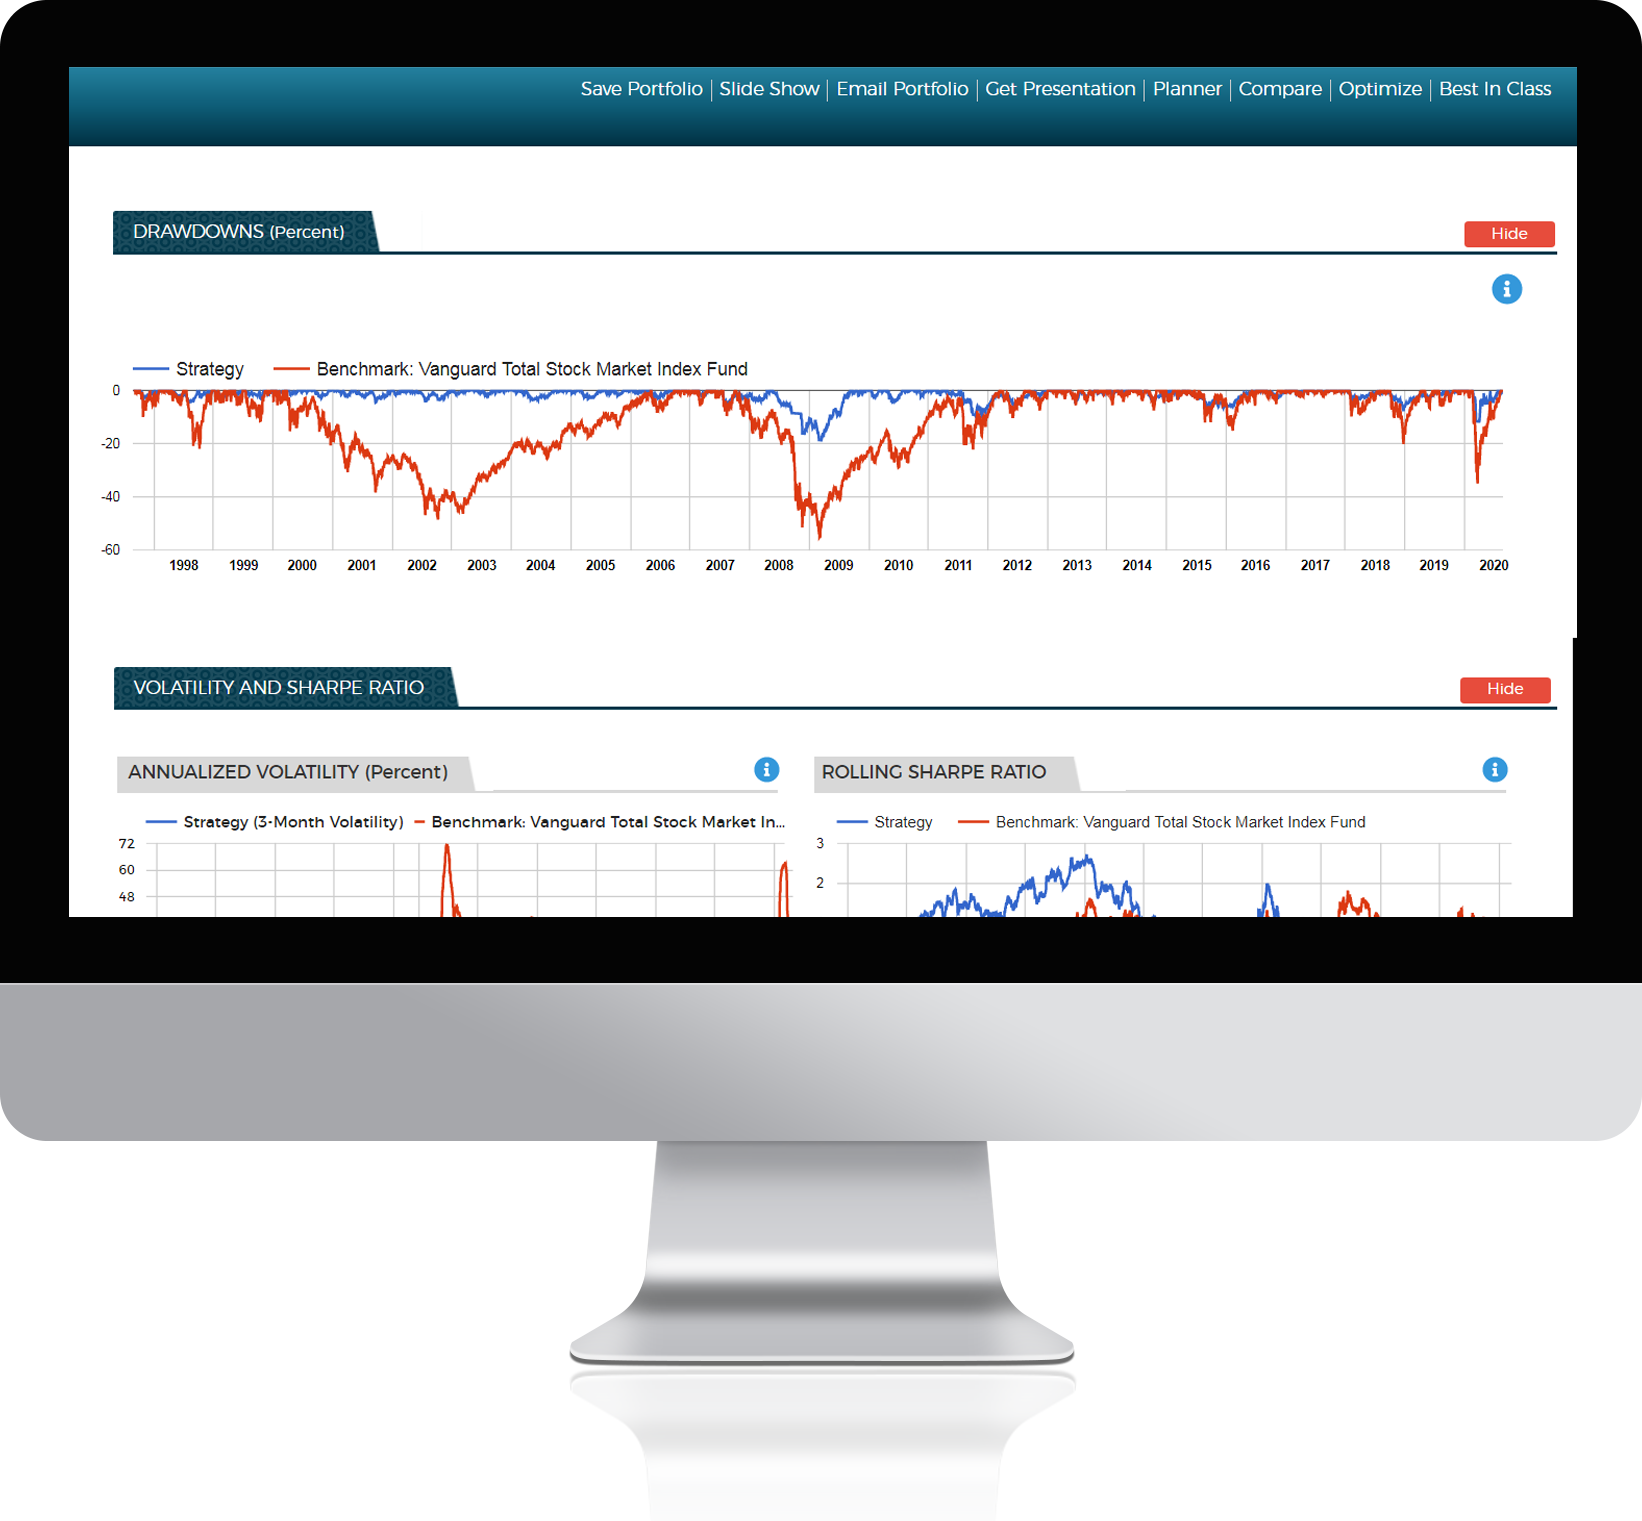 A wealth management tool that allows you to create, analyze and rebalance portfolios